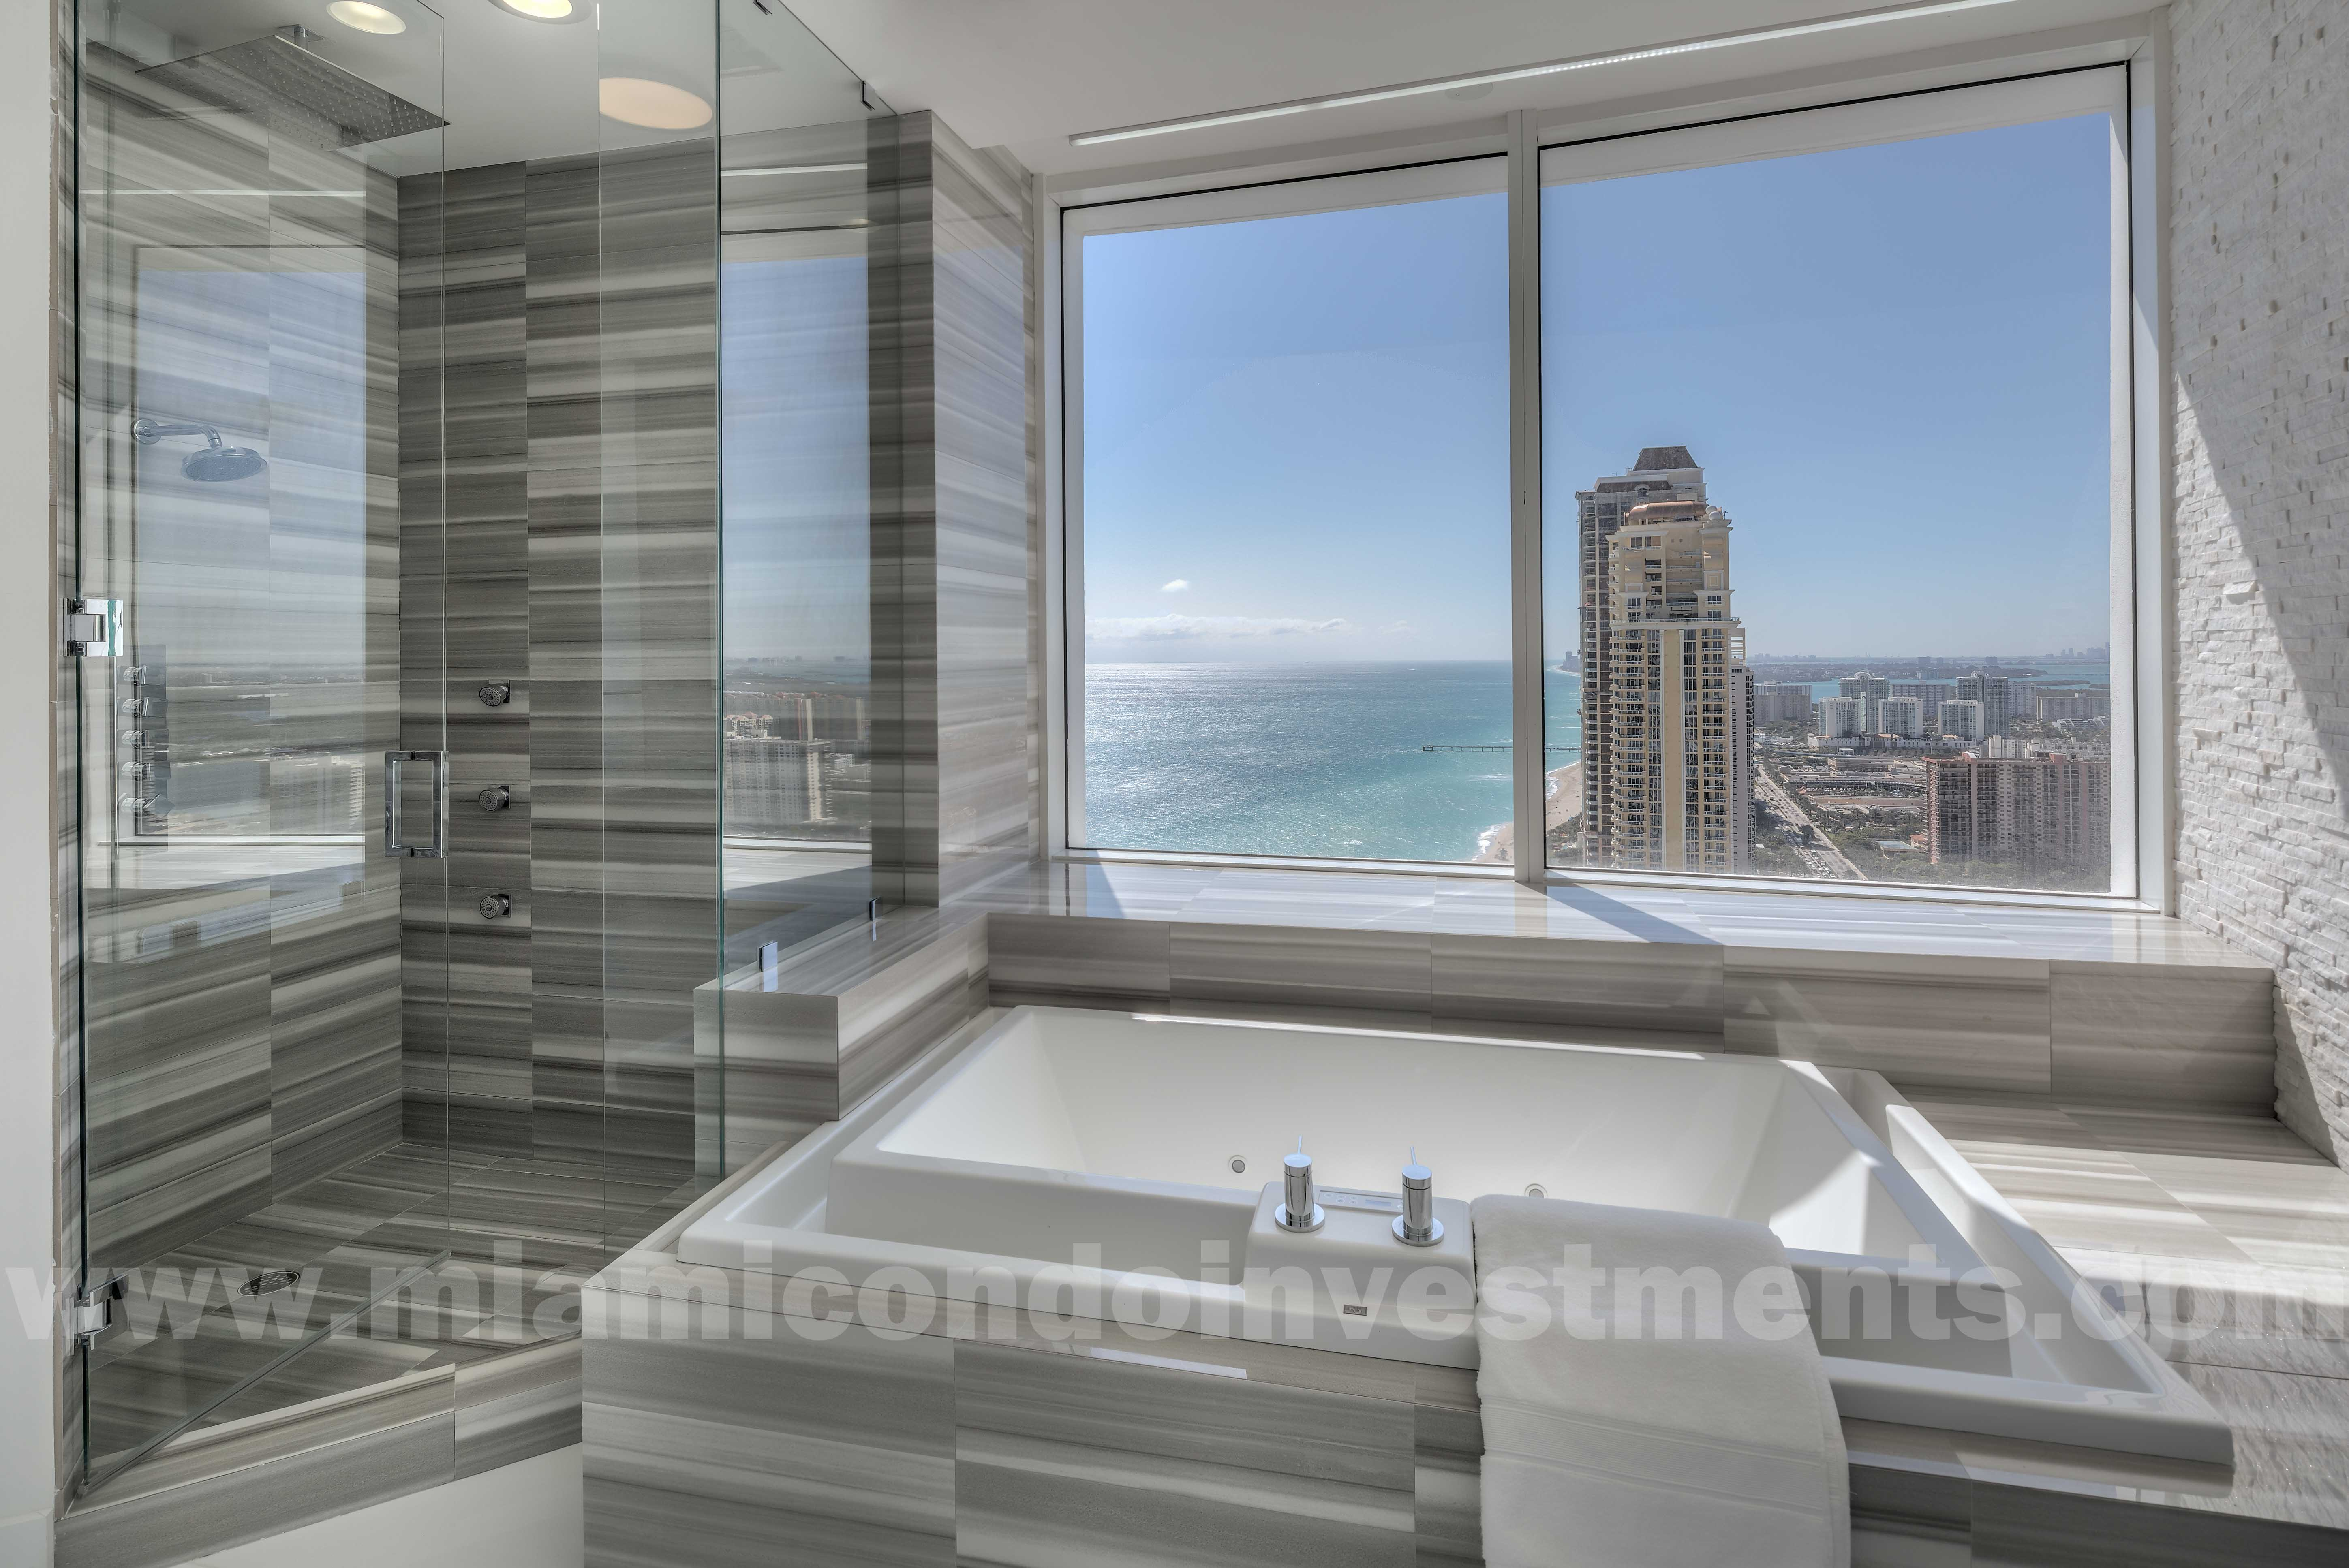 Trump Palace PH5101 master bath